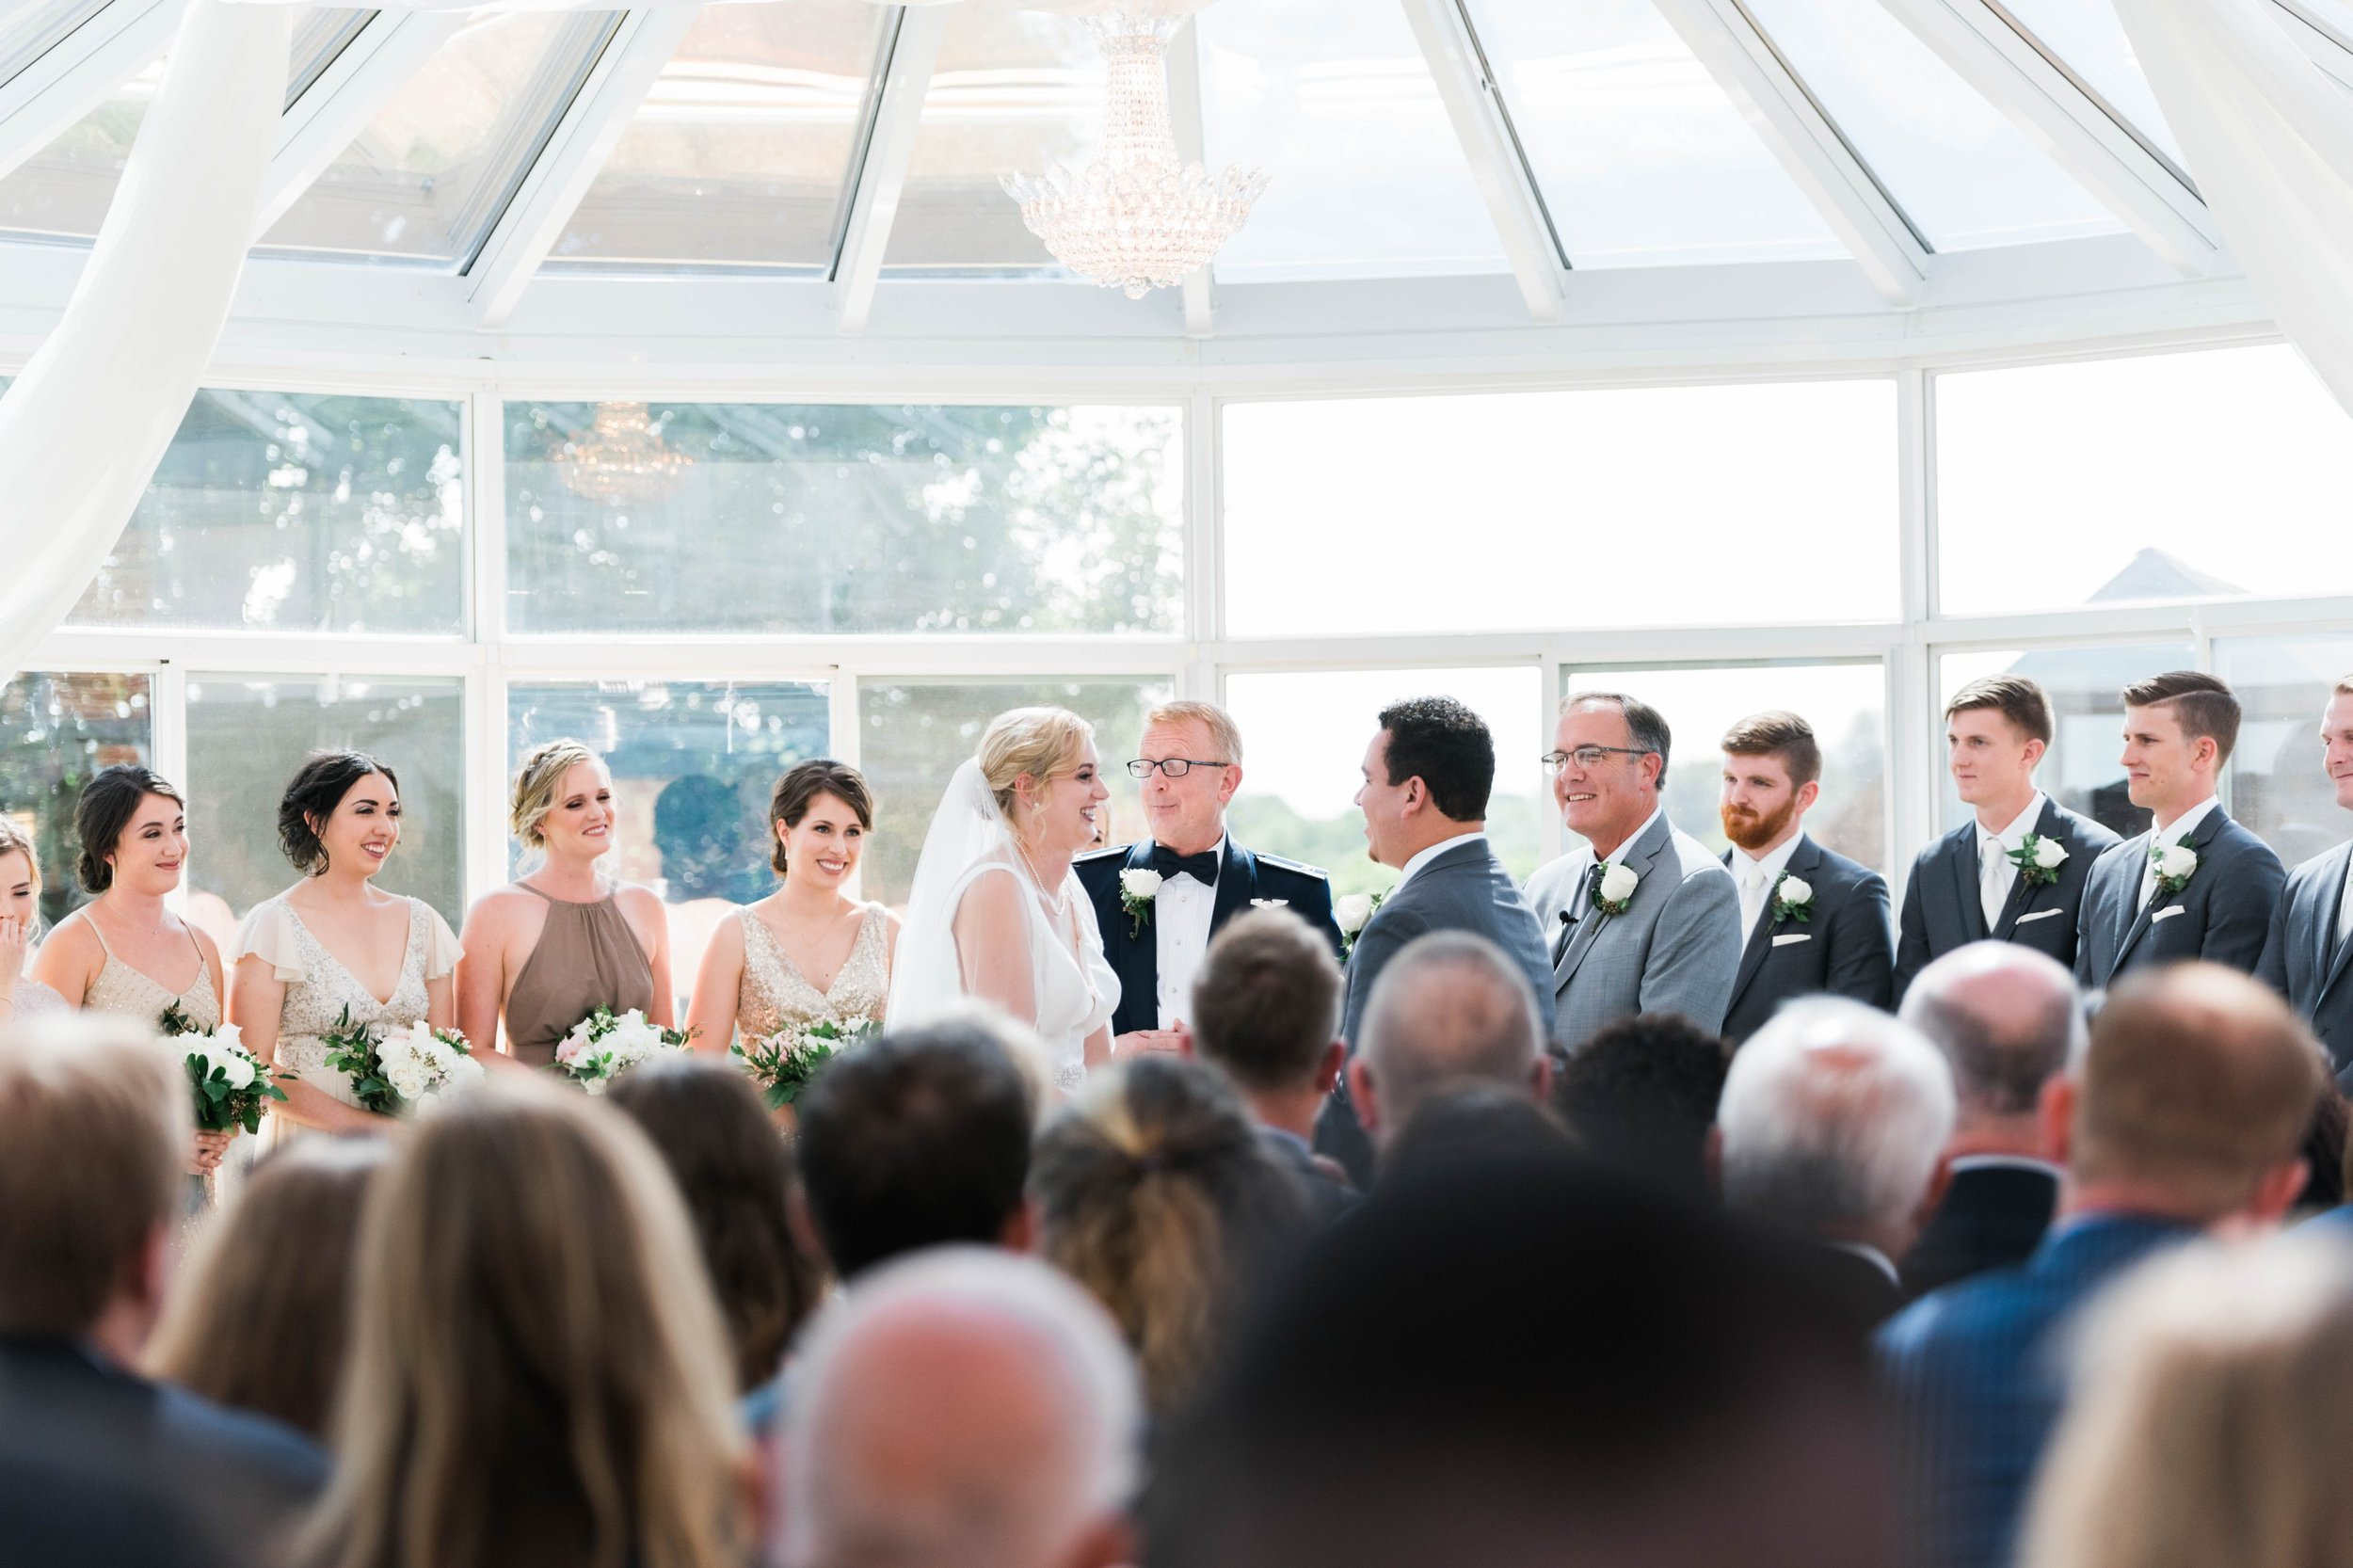 westmanorestate_entwinedevents_lynchburgweddingphotographer_Virginiaweddingphotographer_kateyam 29.jpg